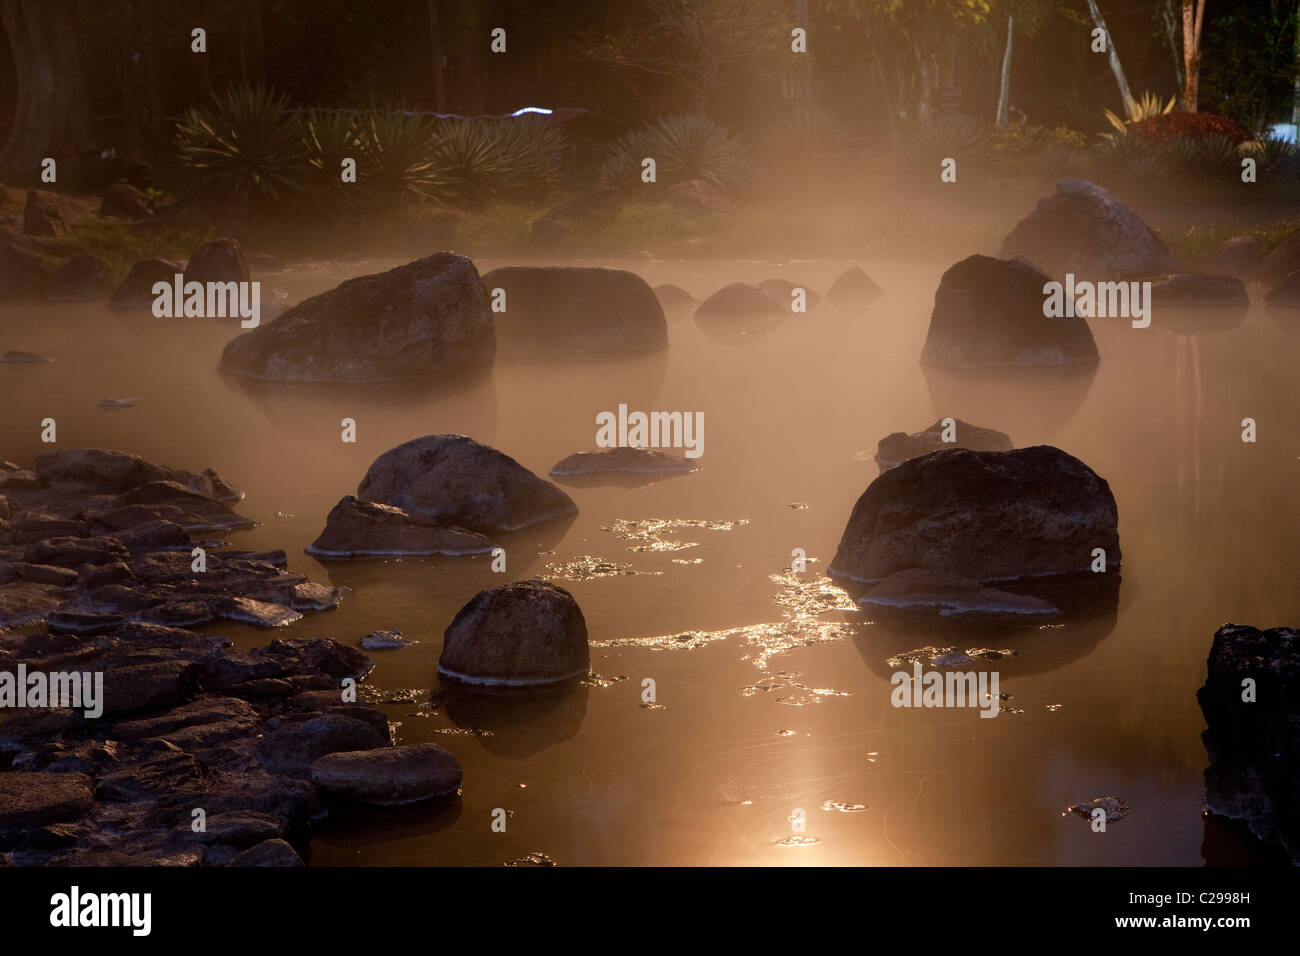 Parc National Chae Fils Hot spring, Chae Fils, Lampang, Thaïlande Photo Stock